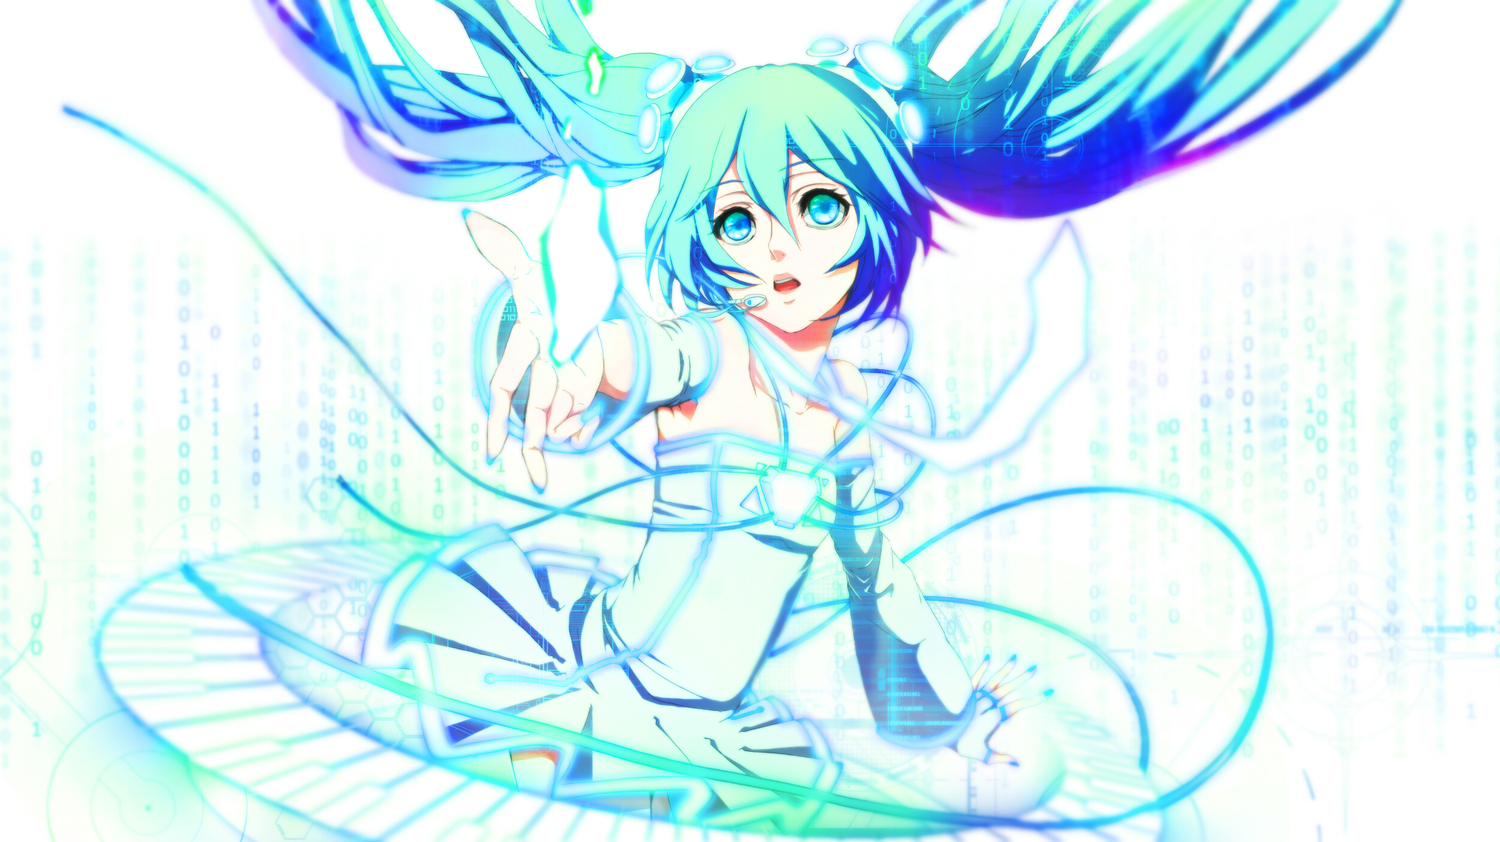 aqua_eyes aqua_hair blue_eyes blue_hair dress hatsune_miku long_hair rinko_(jaunebrillant) twintails vocaloid